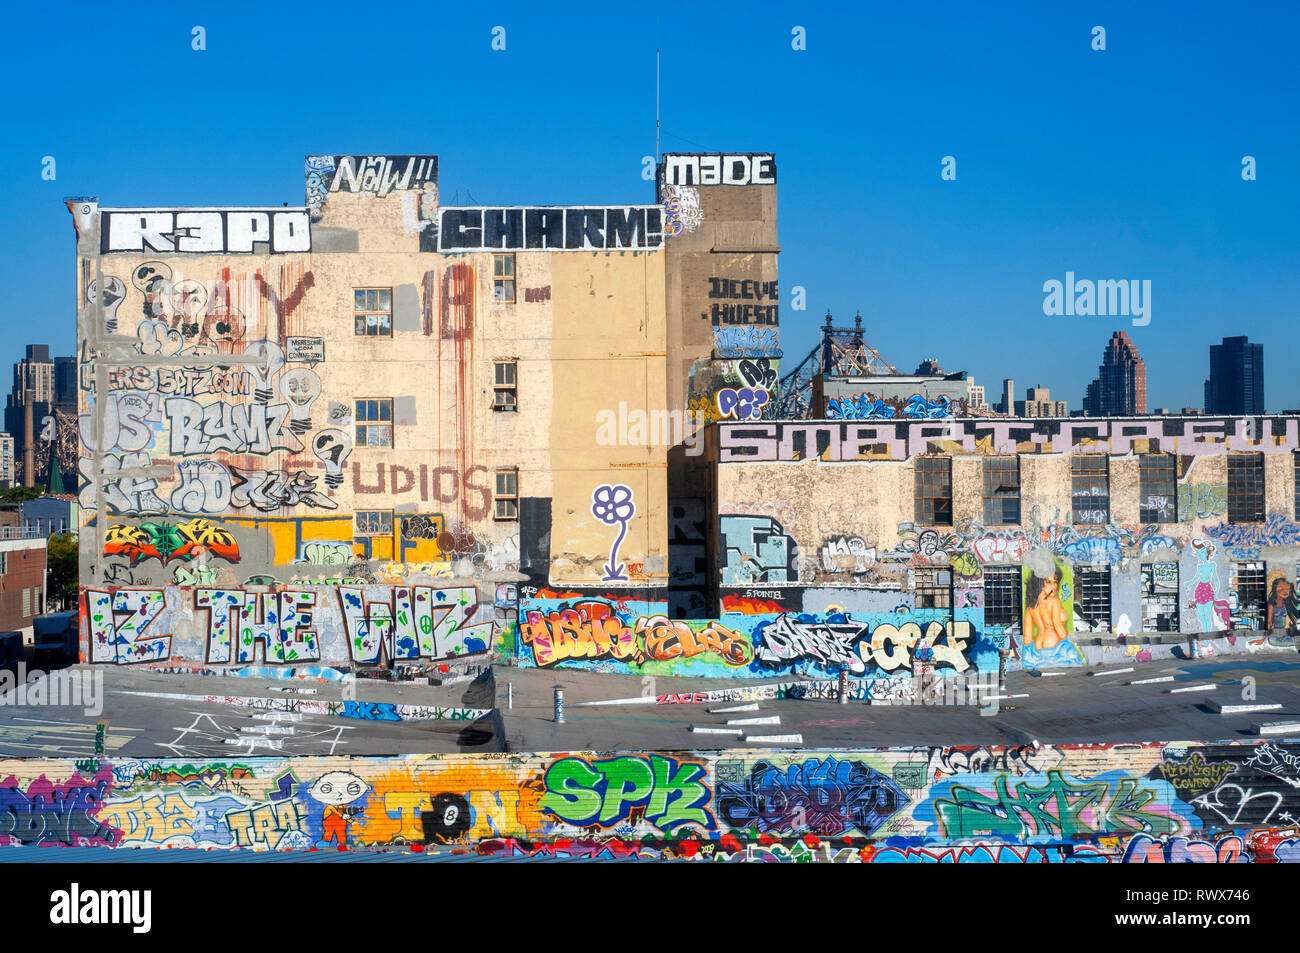 Near the PS1 and Graffiti lovers, there are ships that can be painted from the underground line 7 to show the full fury of this art. PS1 (MOMA). - Stock Image